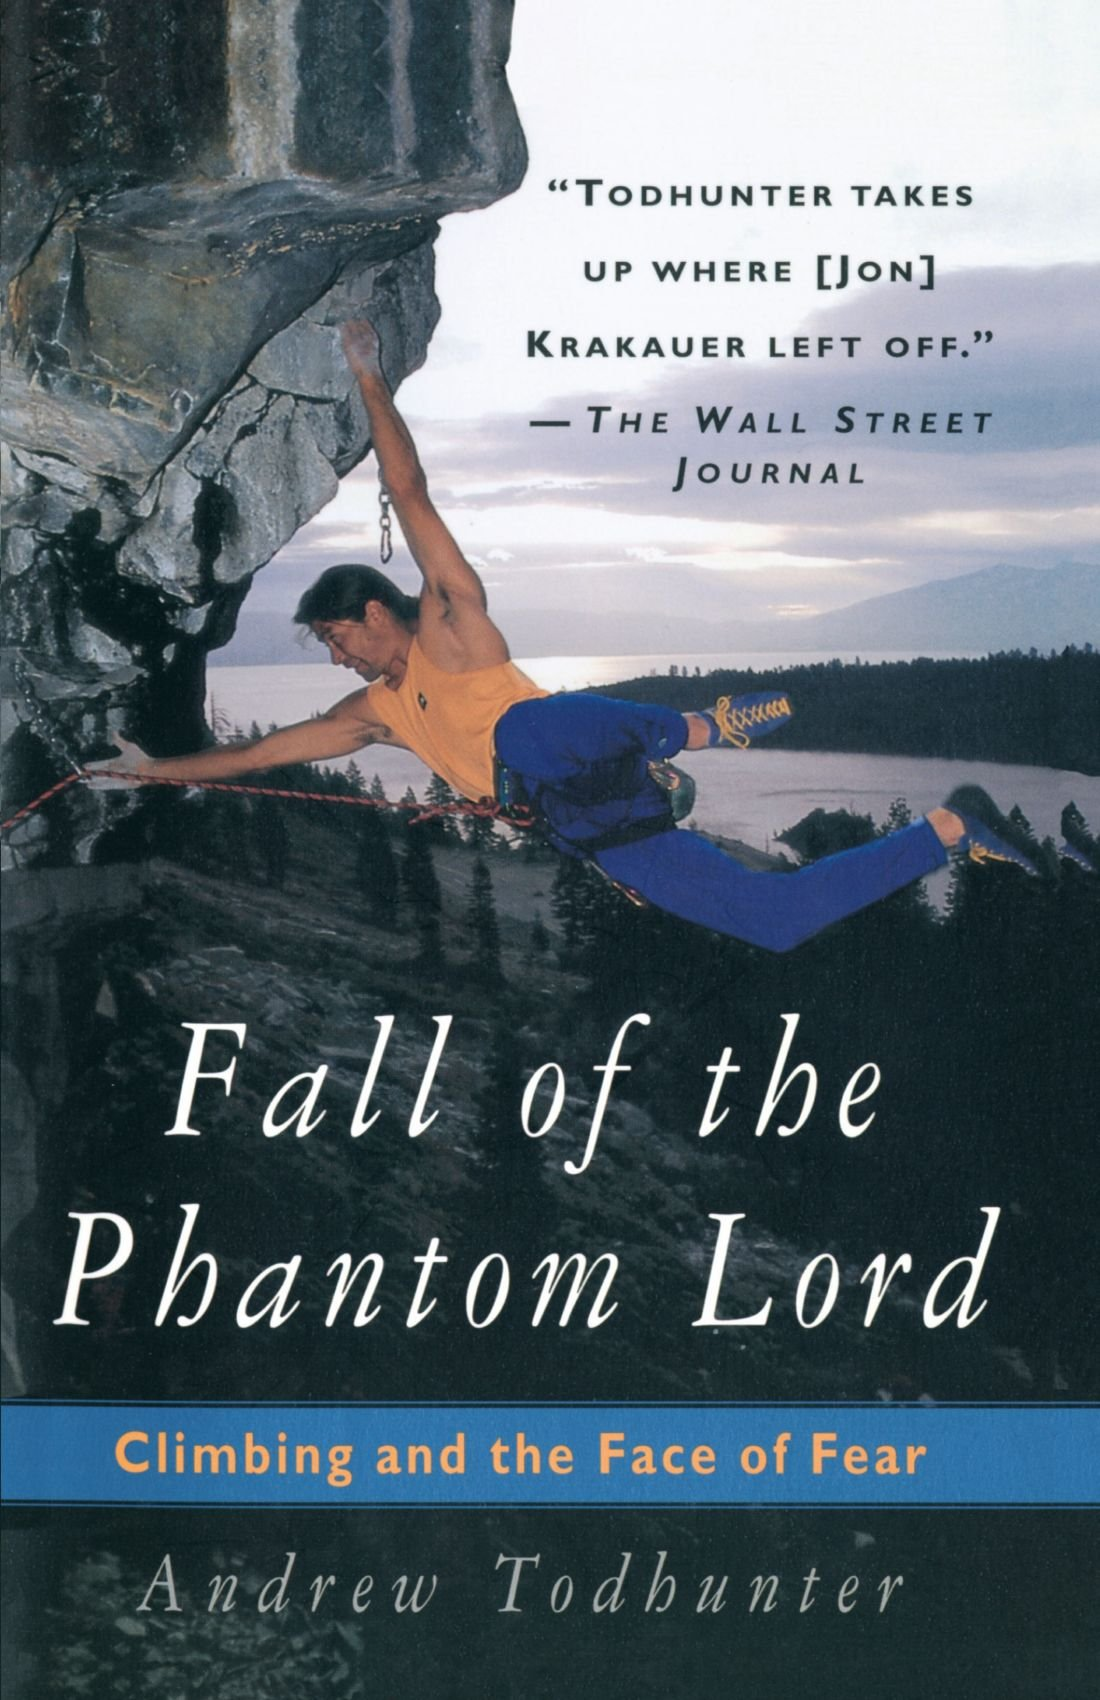 fall-of-the-phantom-lord-climbing-and-the-face-of-fear